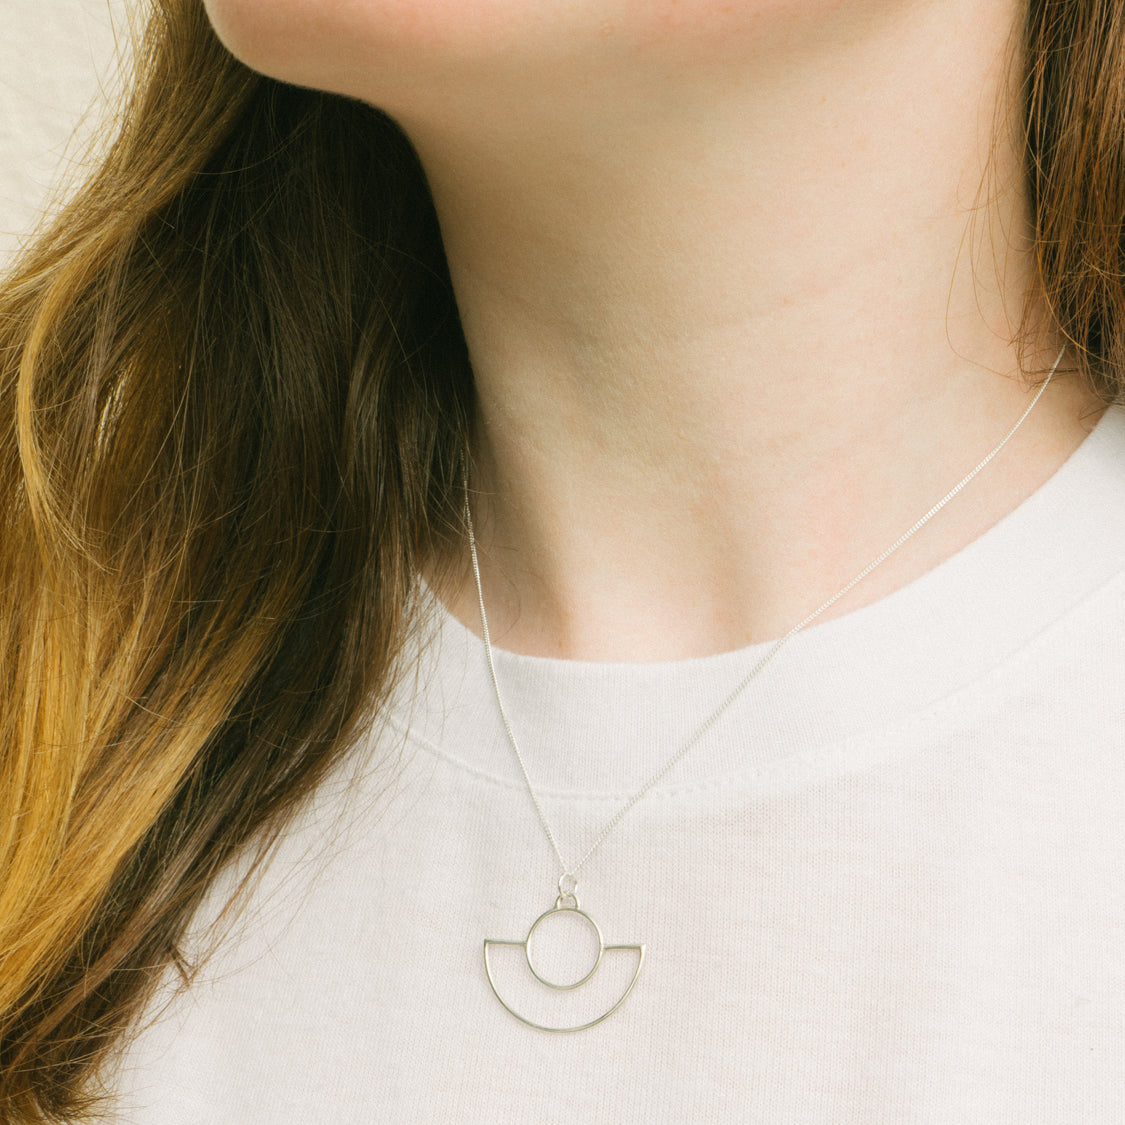 Art Deco inspired delicate eco silver necklace on model